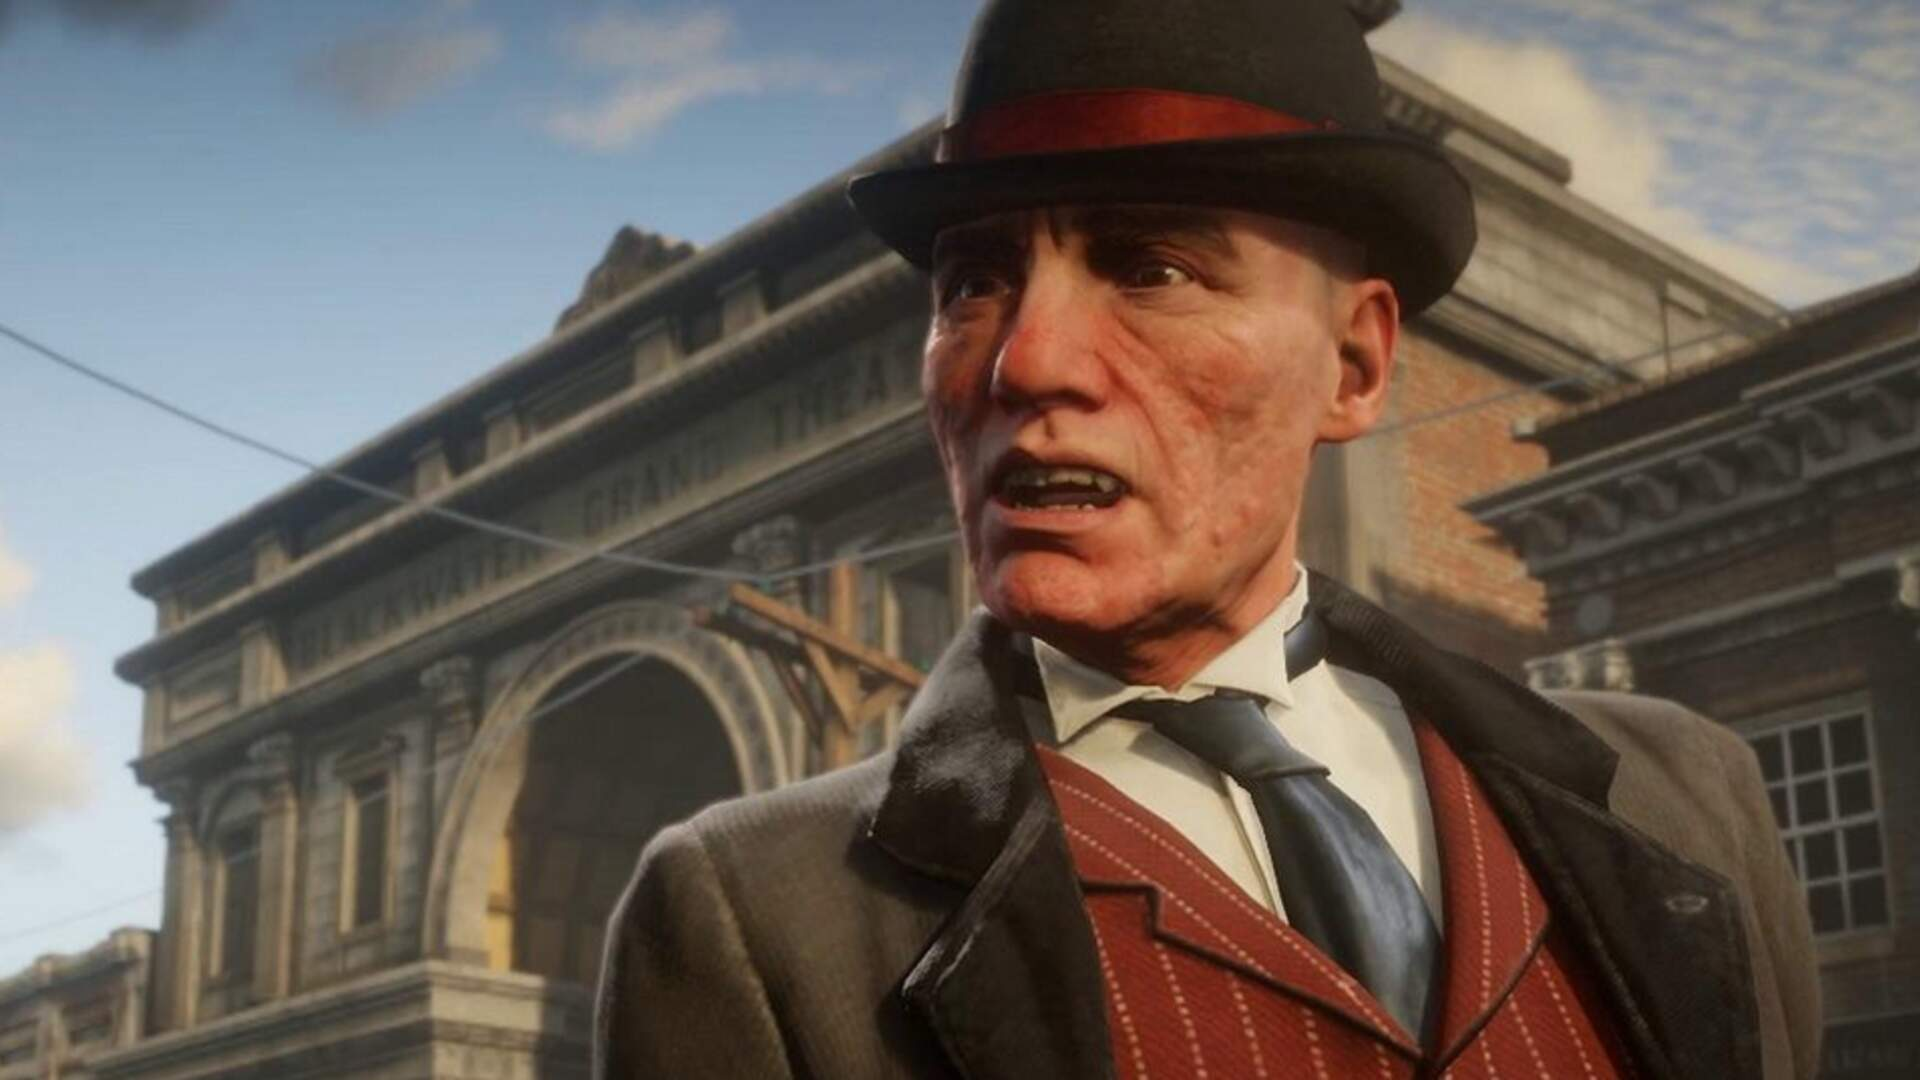 Red Dead Redemption 2's Publishers Are Now in a Legal Fight Against Actual Pinkertons